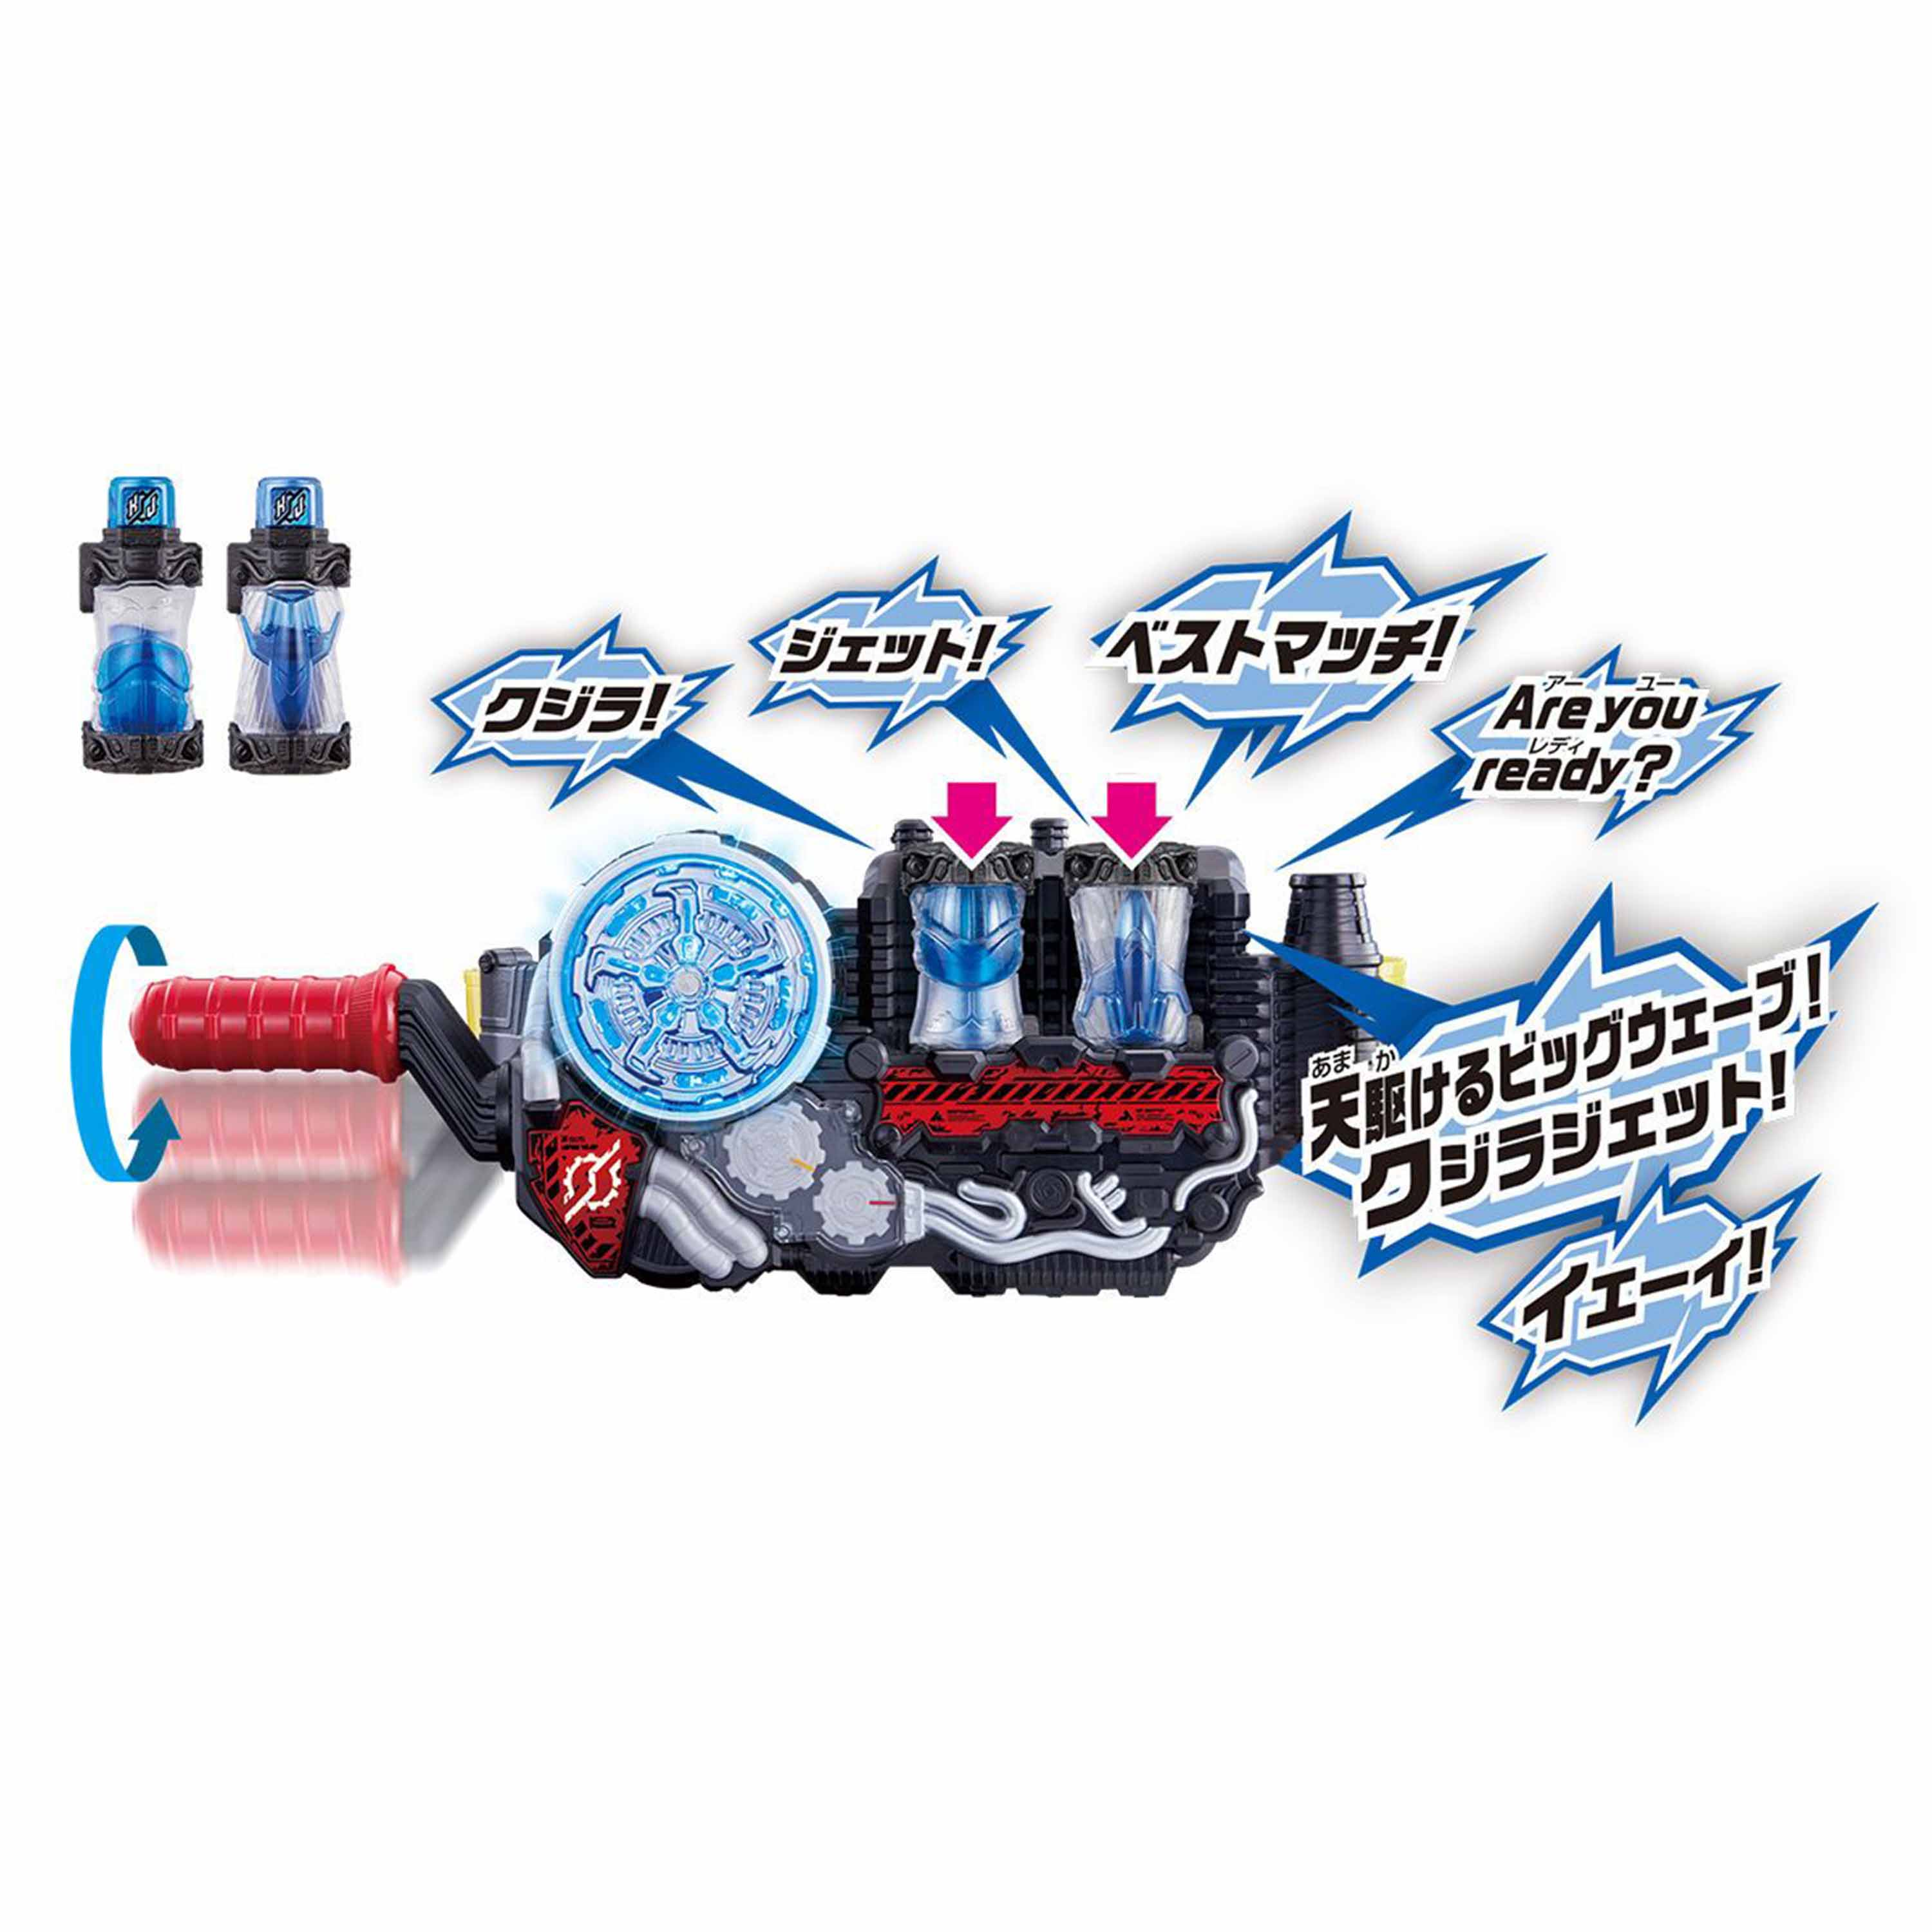 DX WHALE JET FULL BOTTLE SET